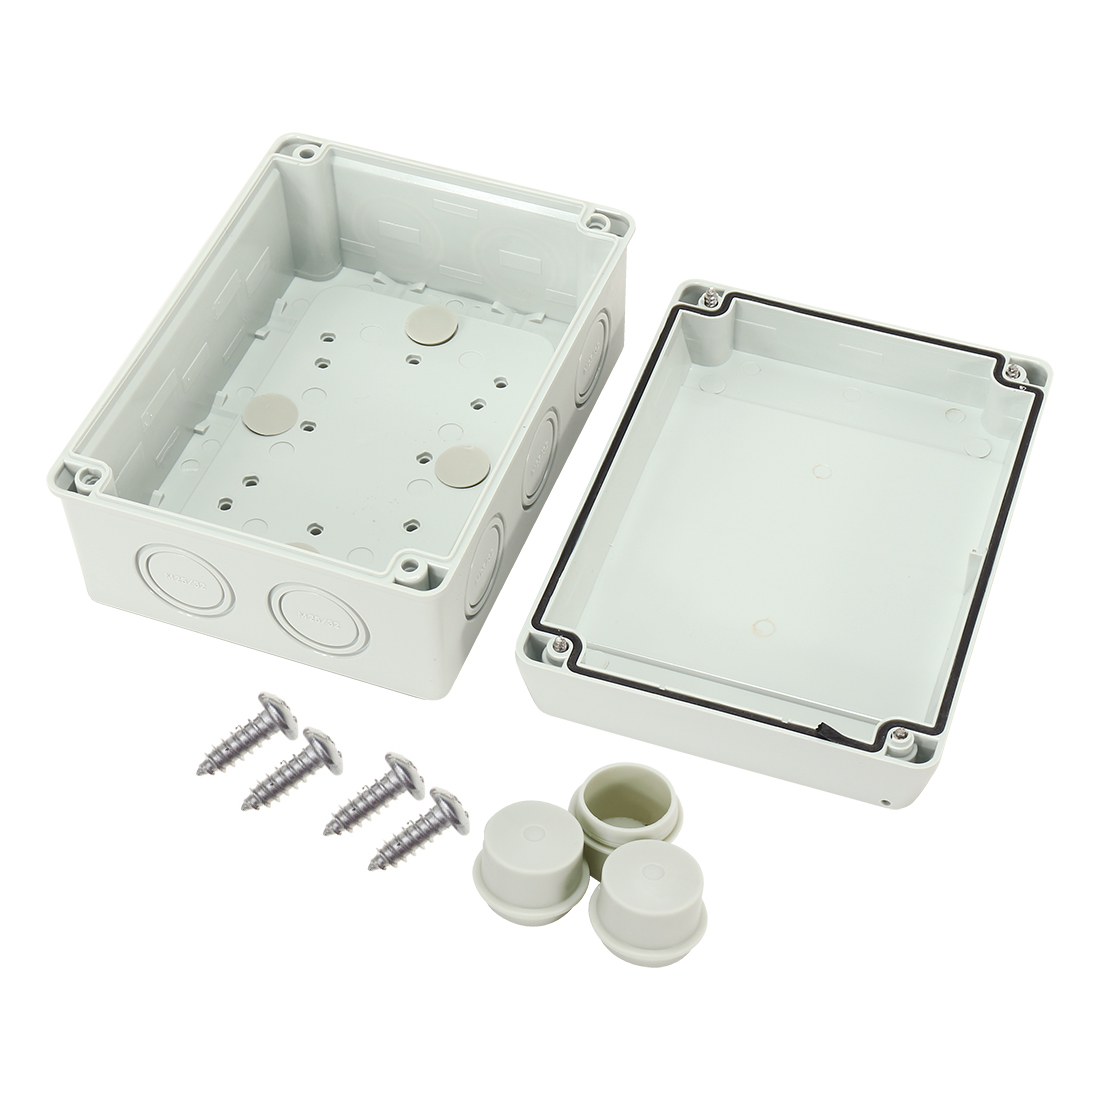 "6.6""x4.9""x3.2""(167mmx125mmx82mm) ABS Flame Retardant IP65 Junction Box Universal Project Enclosure"